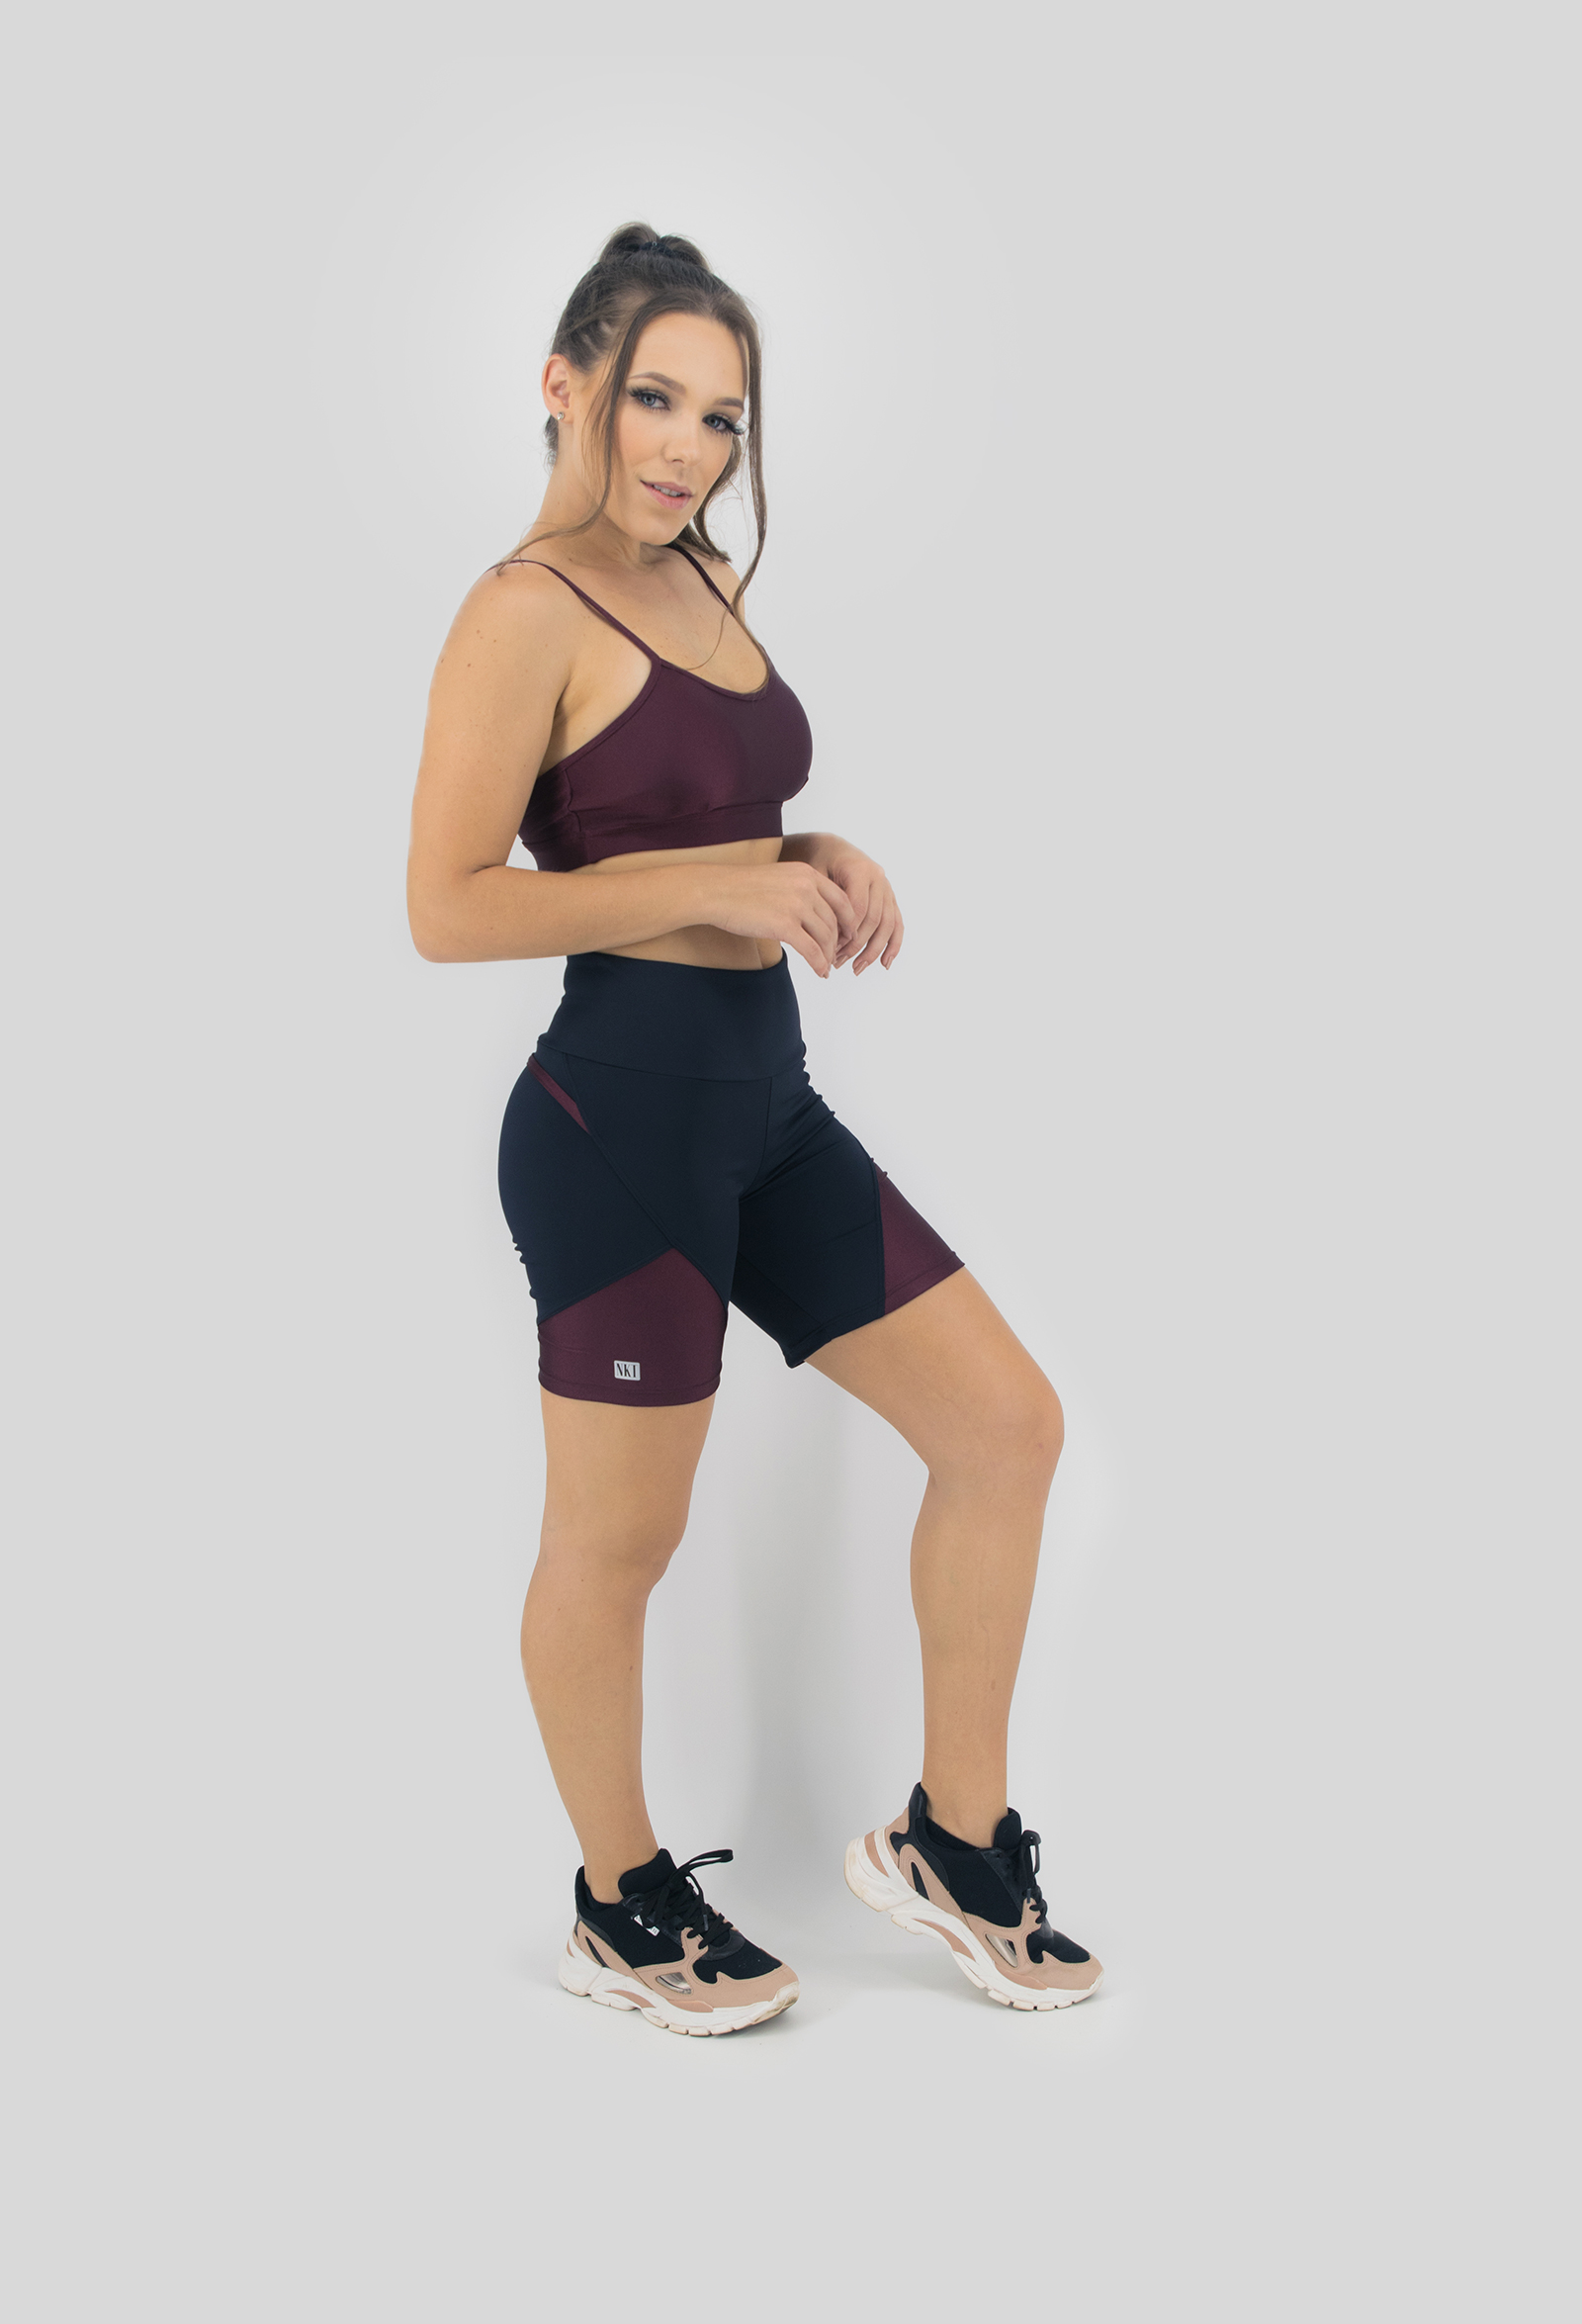 Bermuda Wonderful Bordo, Coleção Move Your Body - NKT Fitwear Moda Fitness